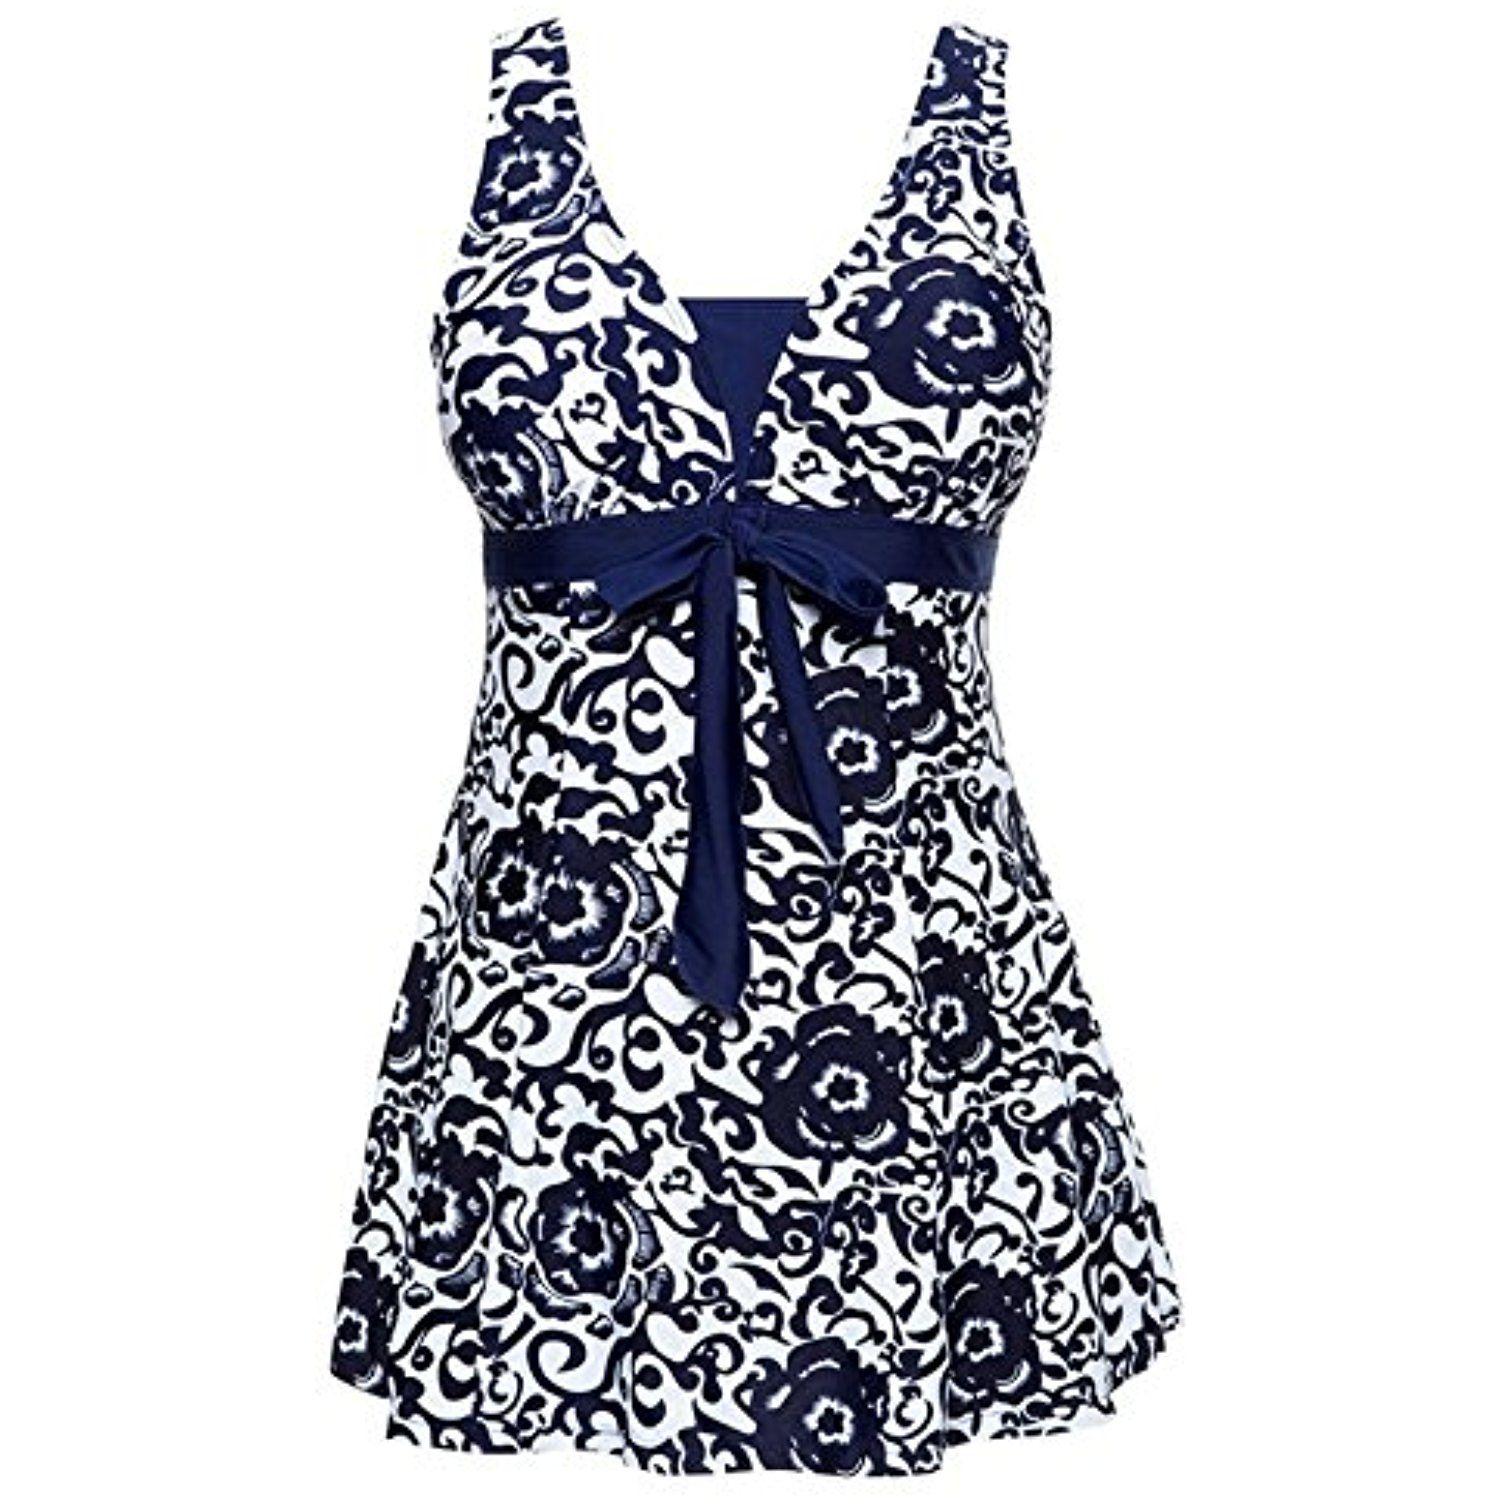 77a17352ec910 Zando Womens Plus Size High Waist One Piece Swimdress Floral Printed Tummy  Control Swimwear Skirted Swimsuit Bathsuit   Continue to the product at the  image ...